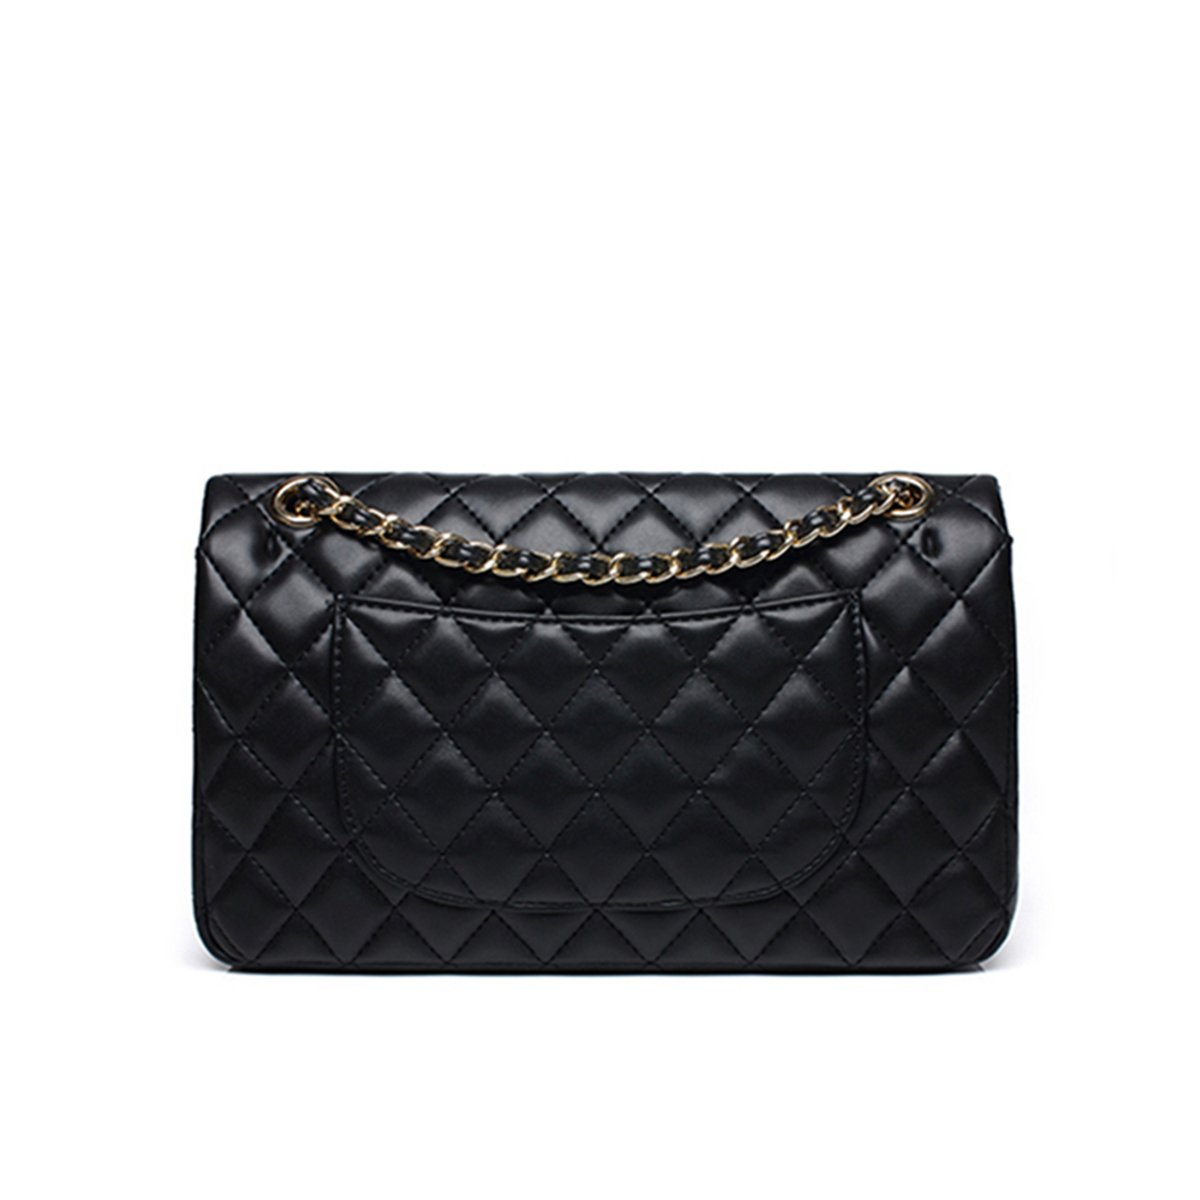 e7550e608dac Women's Chain Quilted PU Leather Shoulder Bag